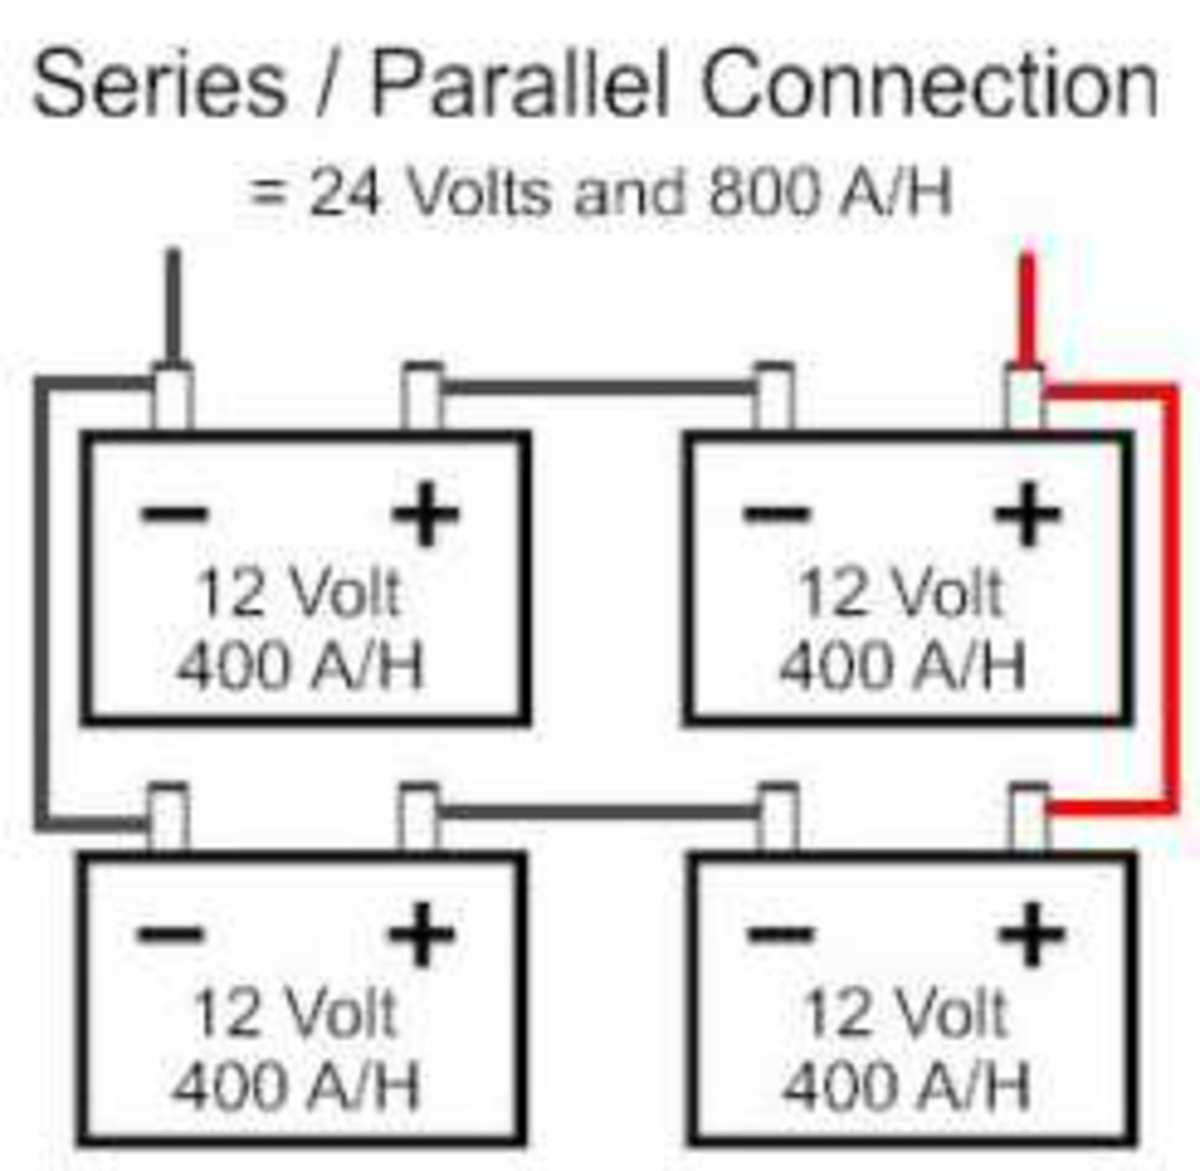 connecting batteries  serial  parallel  serial and parallel u2014dc voltages  current  and wattage on